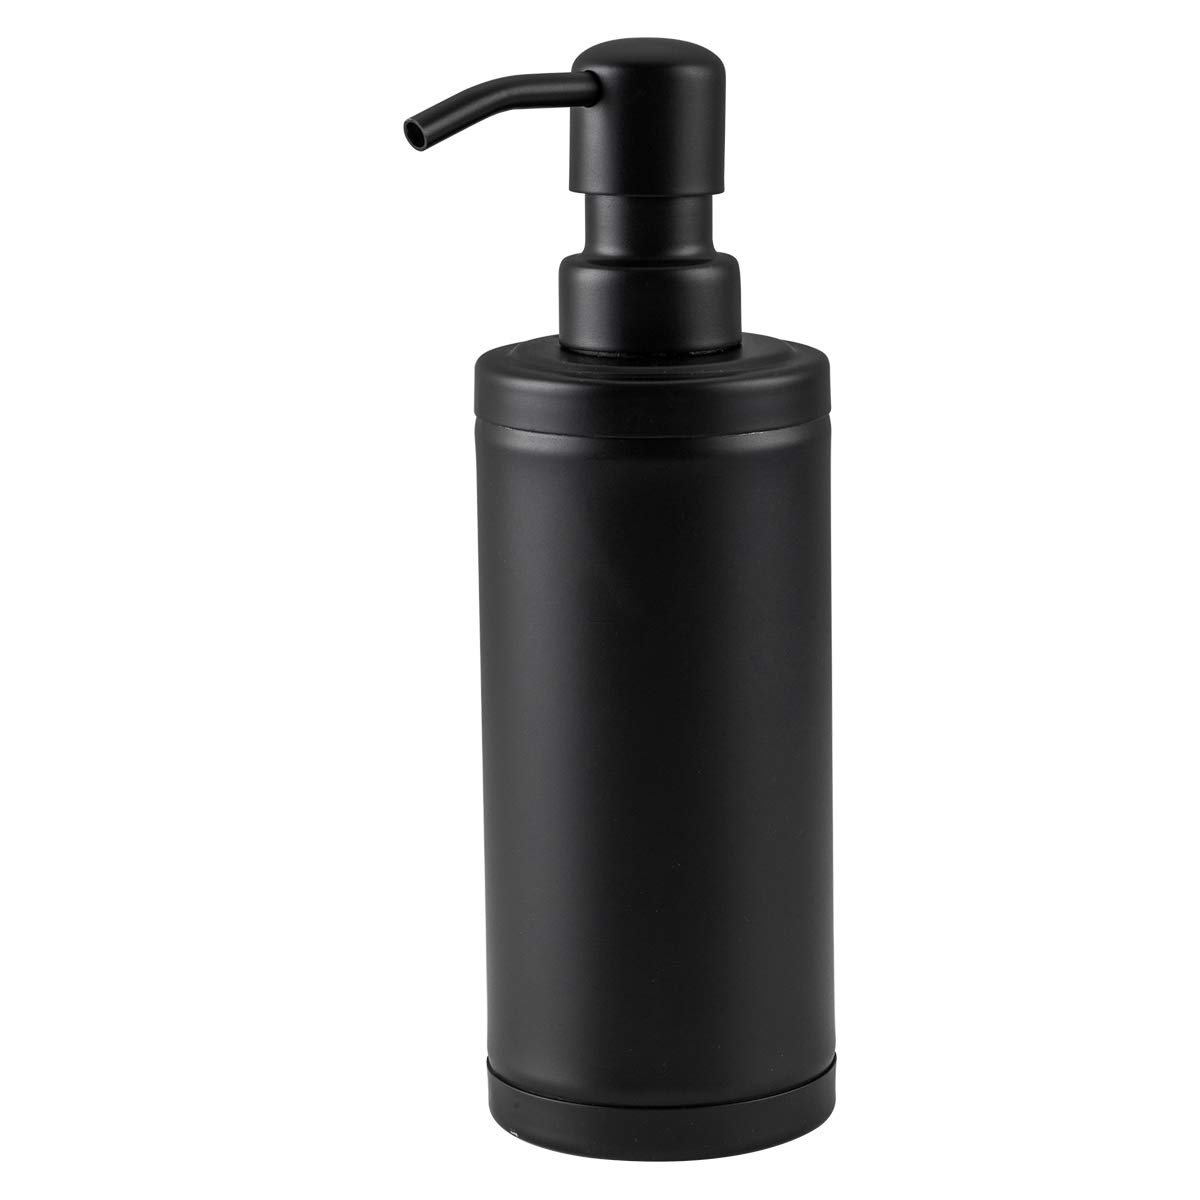 GAPPO Matte Black Soap Dispenser Stainless Steel Metal Pump Hand Lotion Bottle for Bathroom, Bedroom and Kitchen